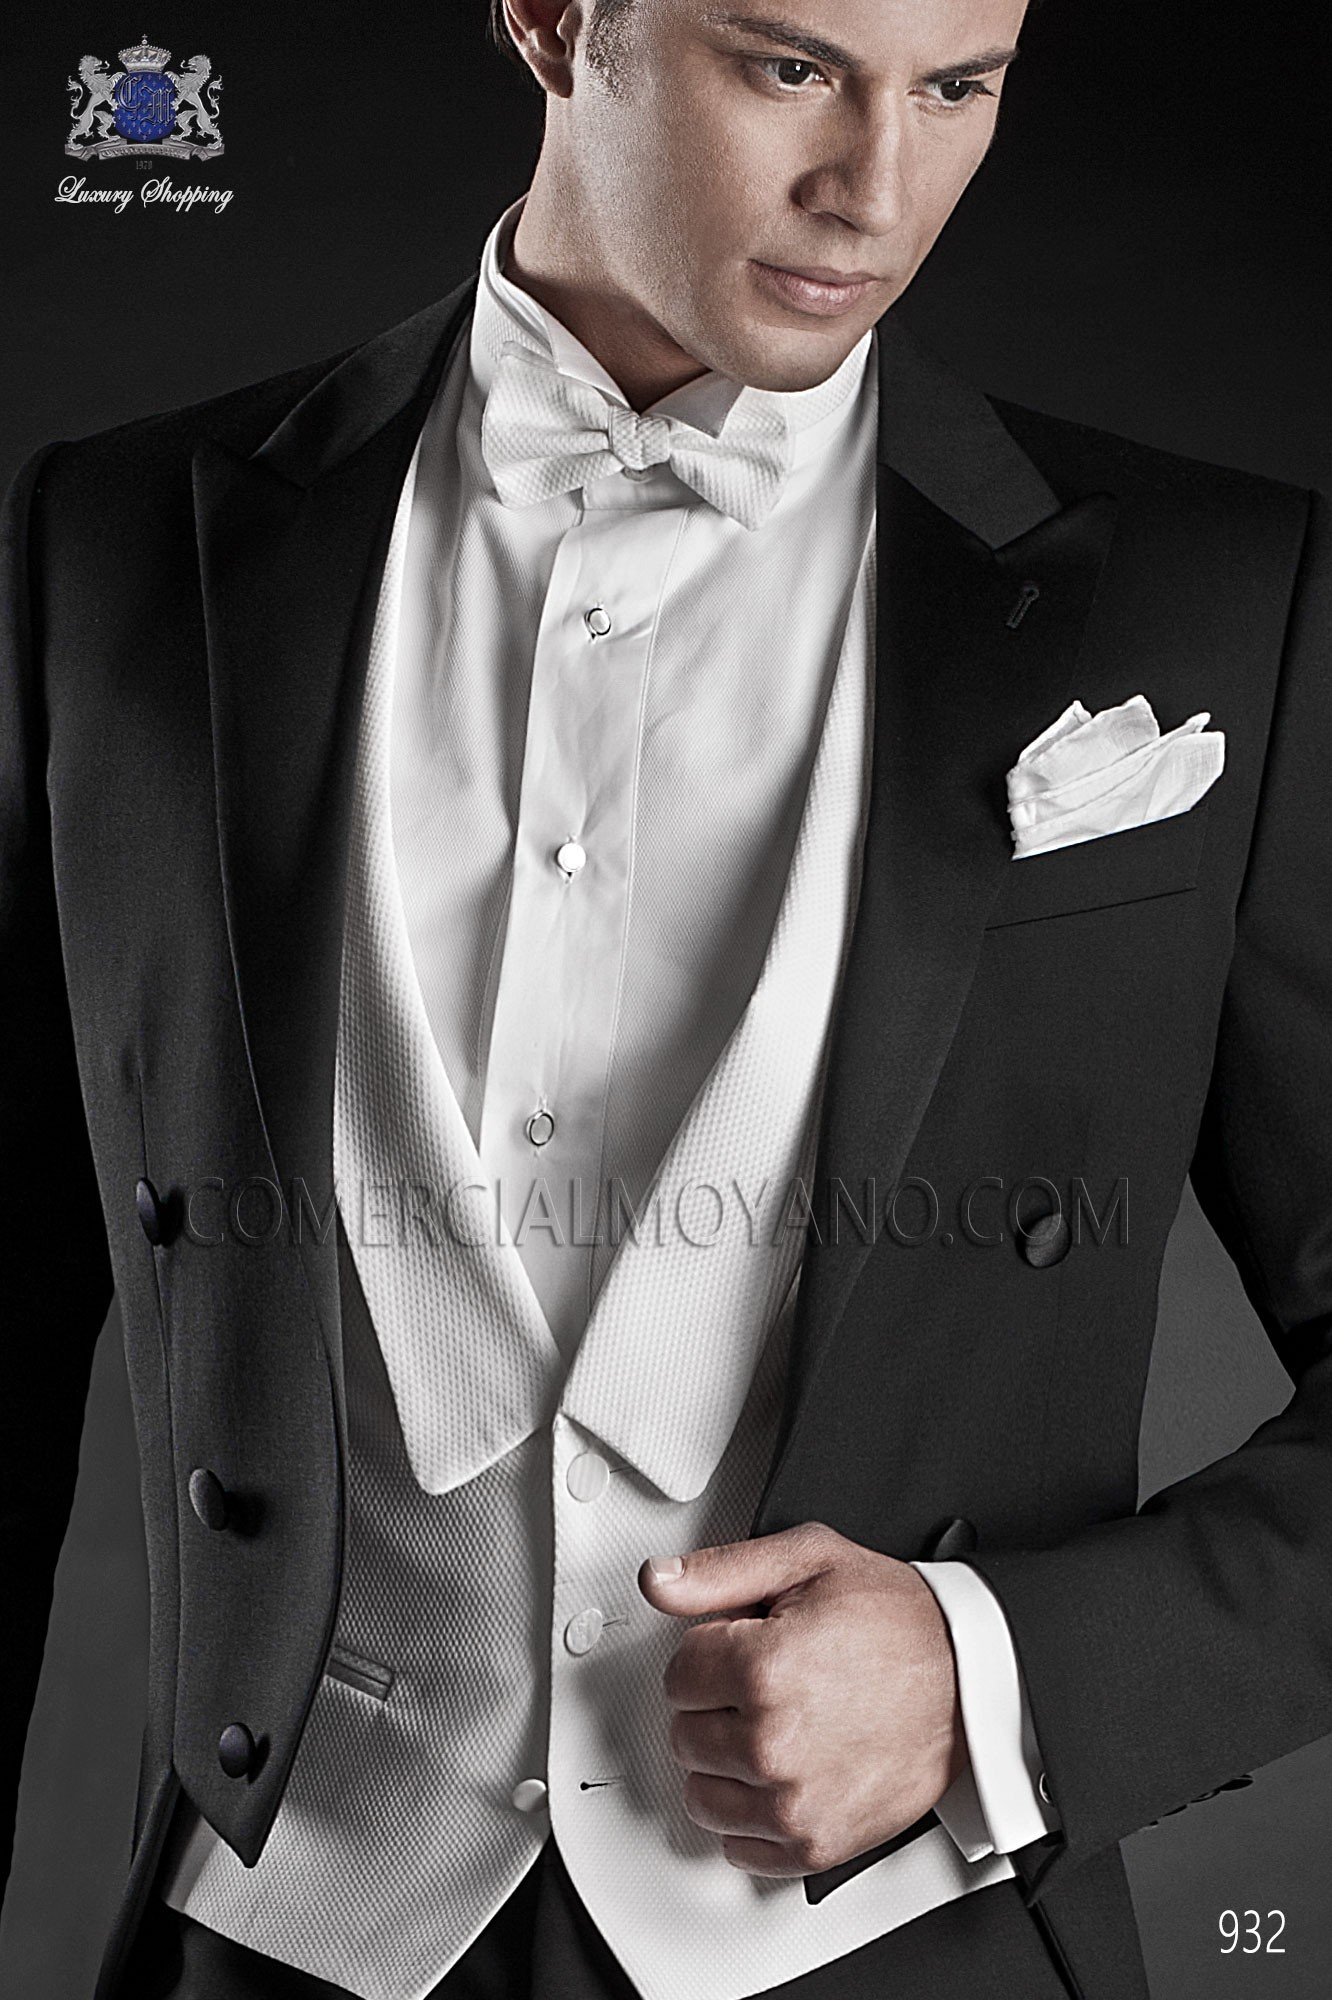 Italian blacktie black men wedding suit, model: 932 Ottavio Nuccio Gala Black Tie Collection